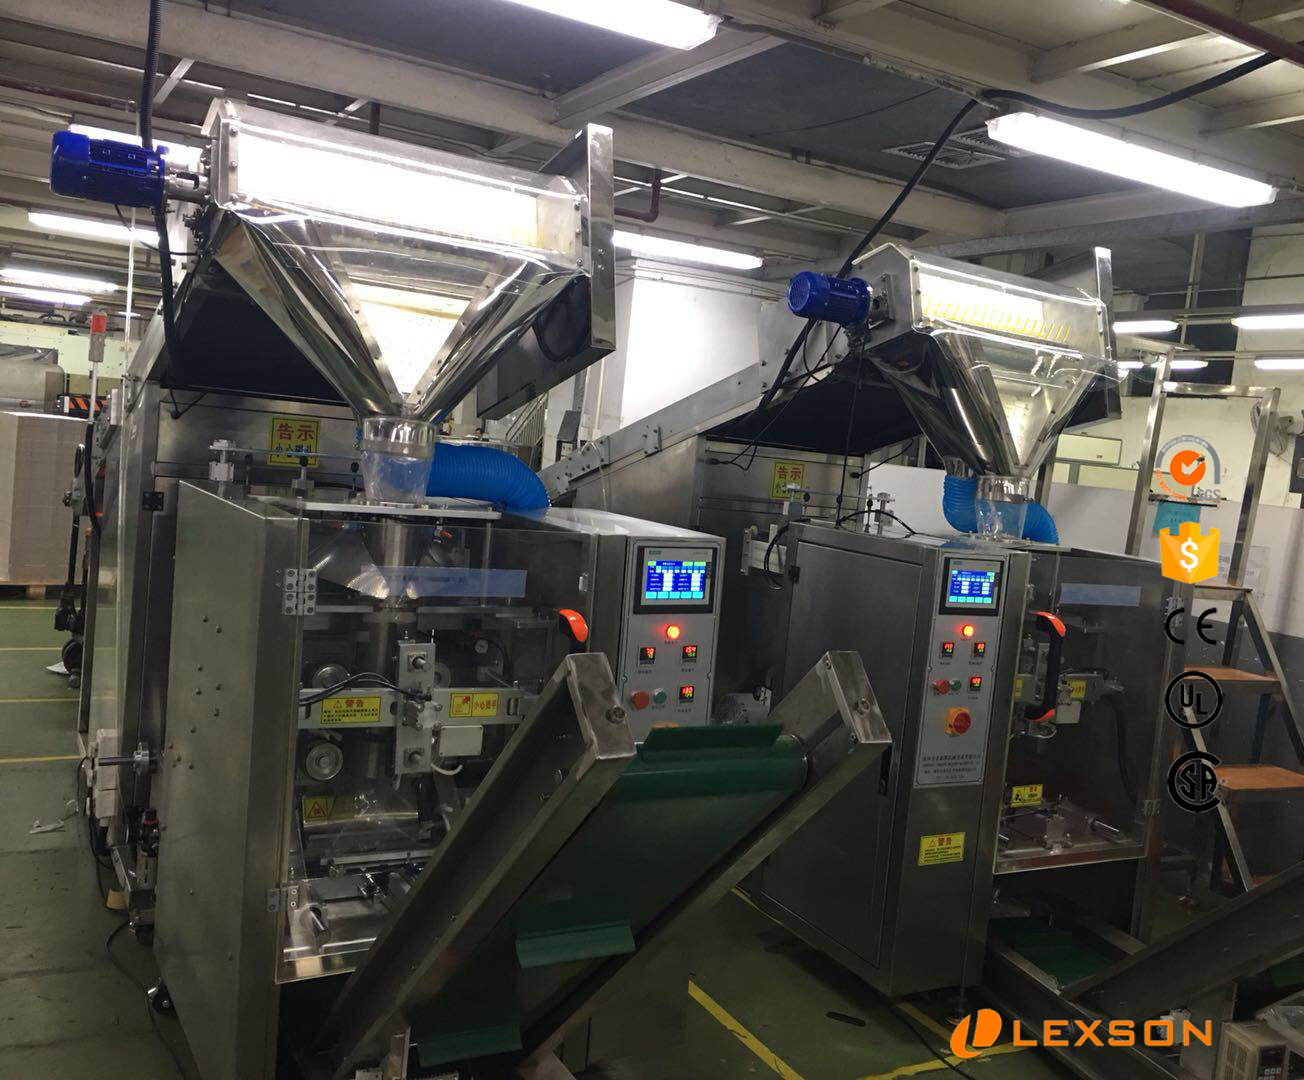 lexson automatic puzzles scattering bagging system